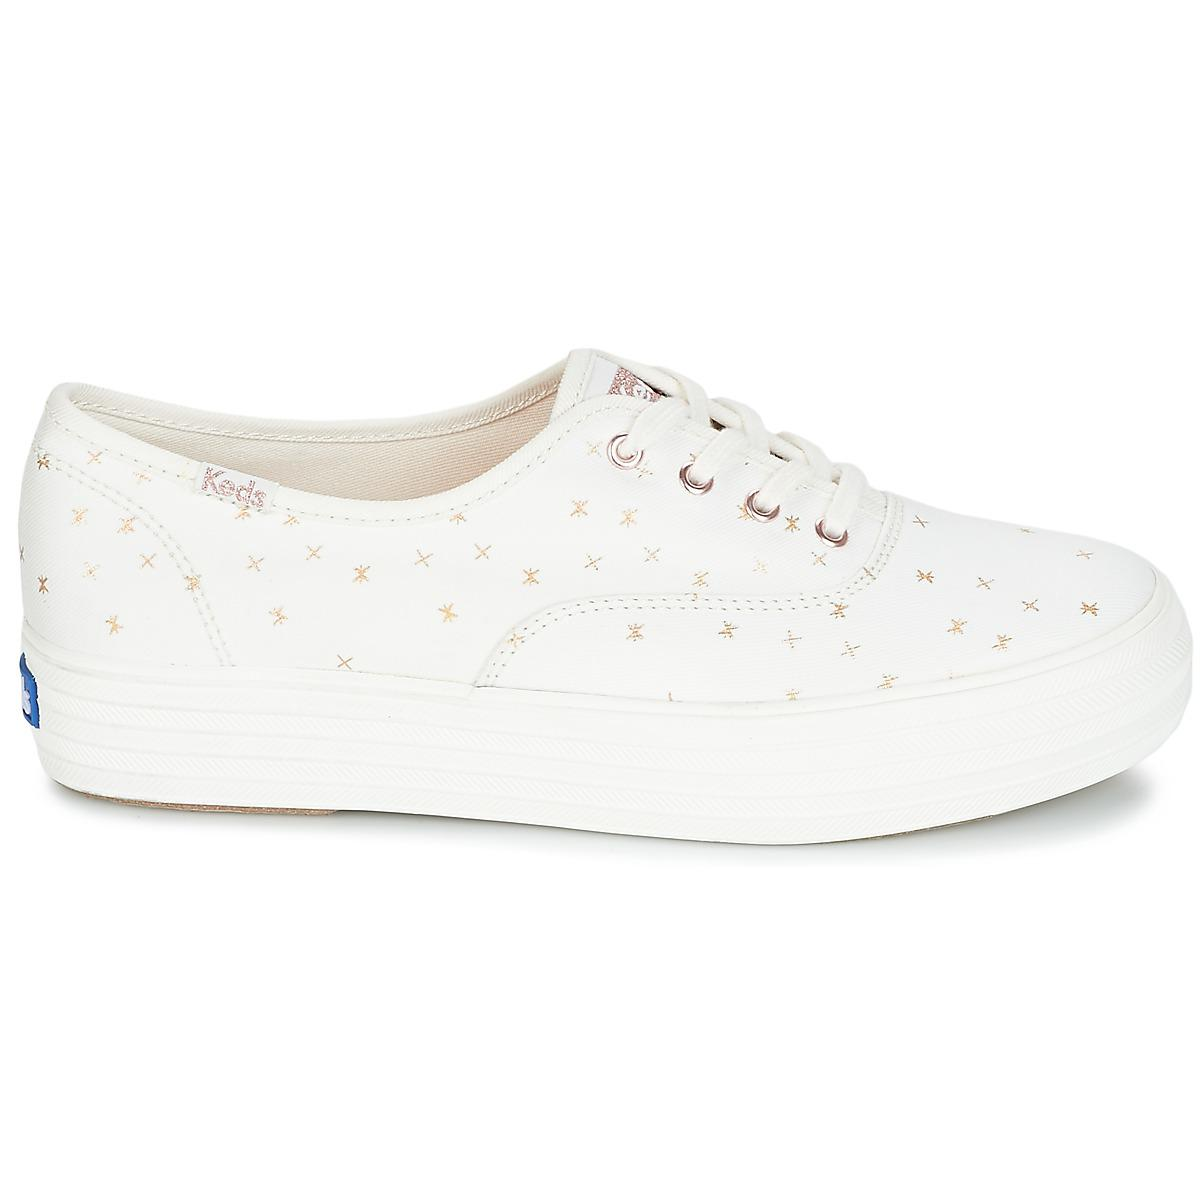 55f2ca3e231bd Keds - White Triple Ethereal Shoes (trainers) - Lyst. View fullscreen